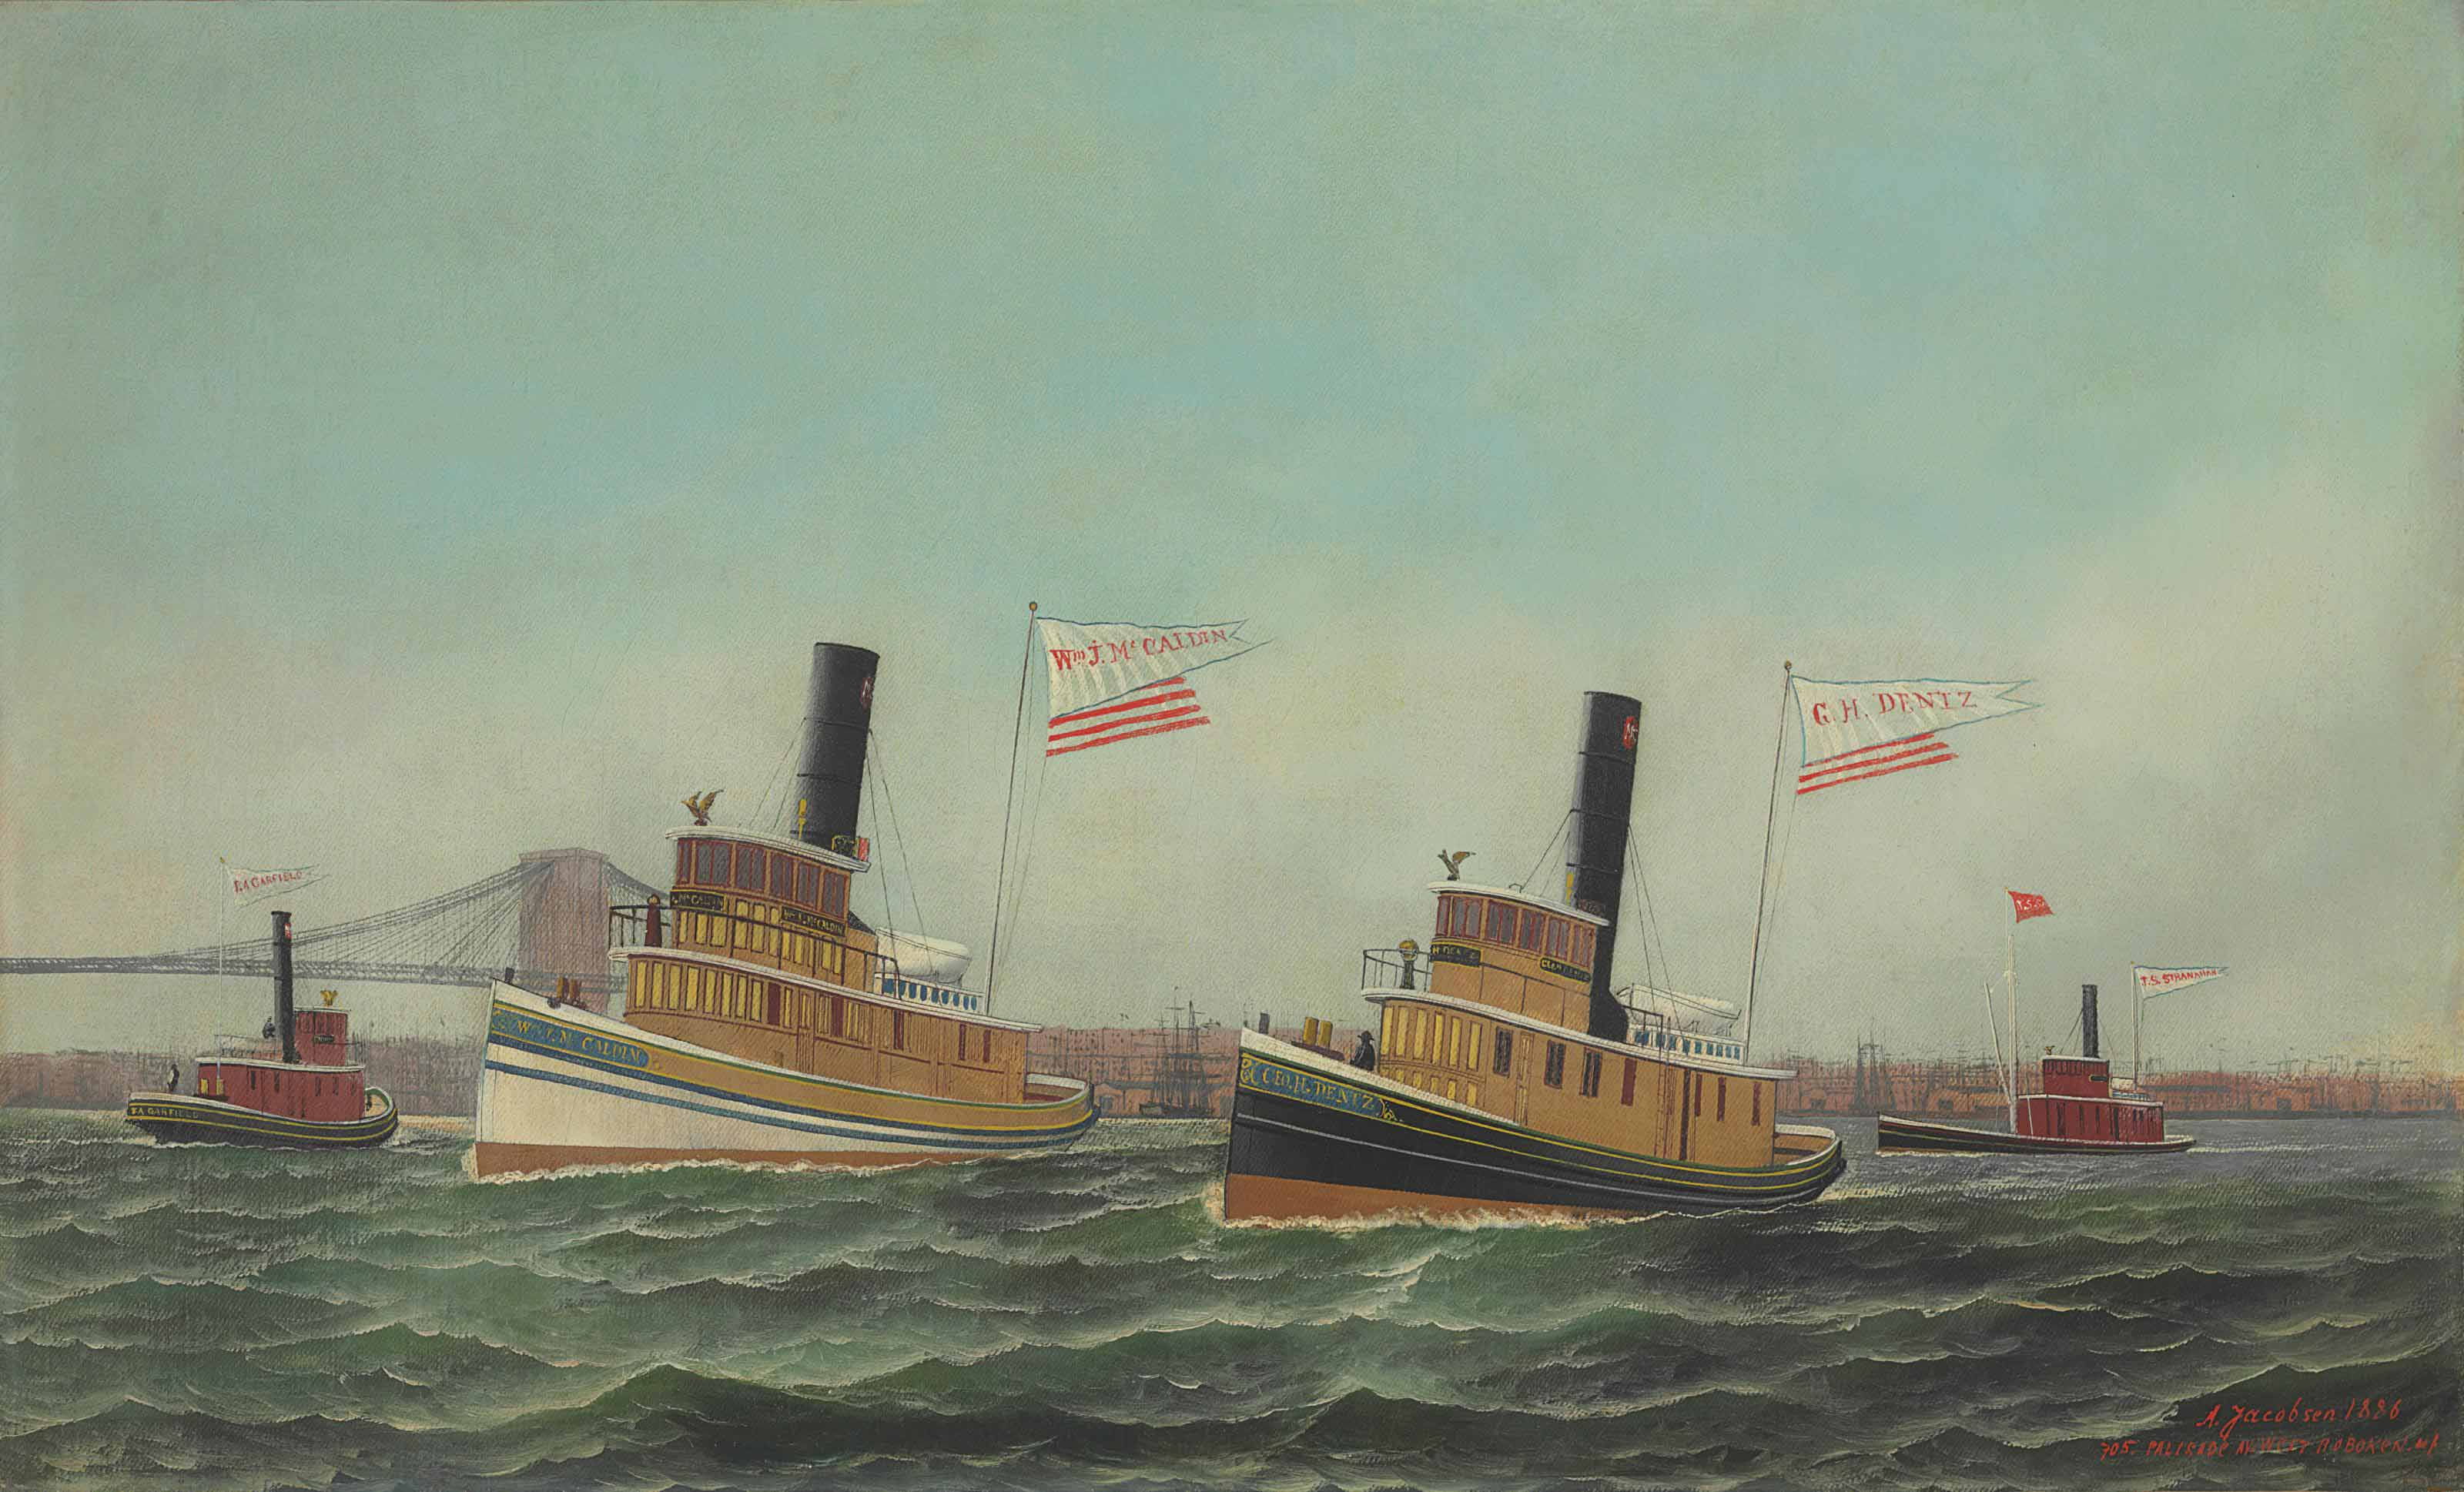 The Tugboats of WM. J. McCaldin, G.H. Dentz and J.S. Stranahan in the East River, South of the Brooklyn Bridge